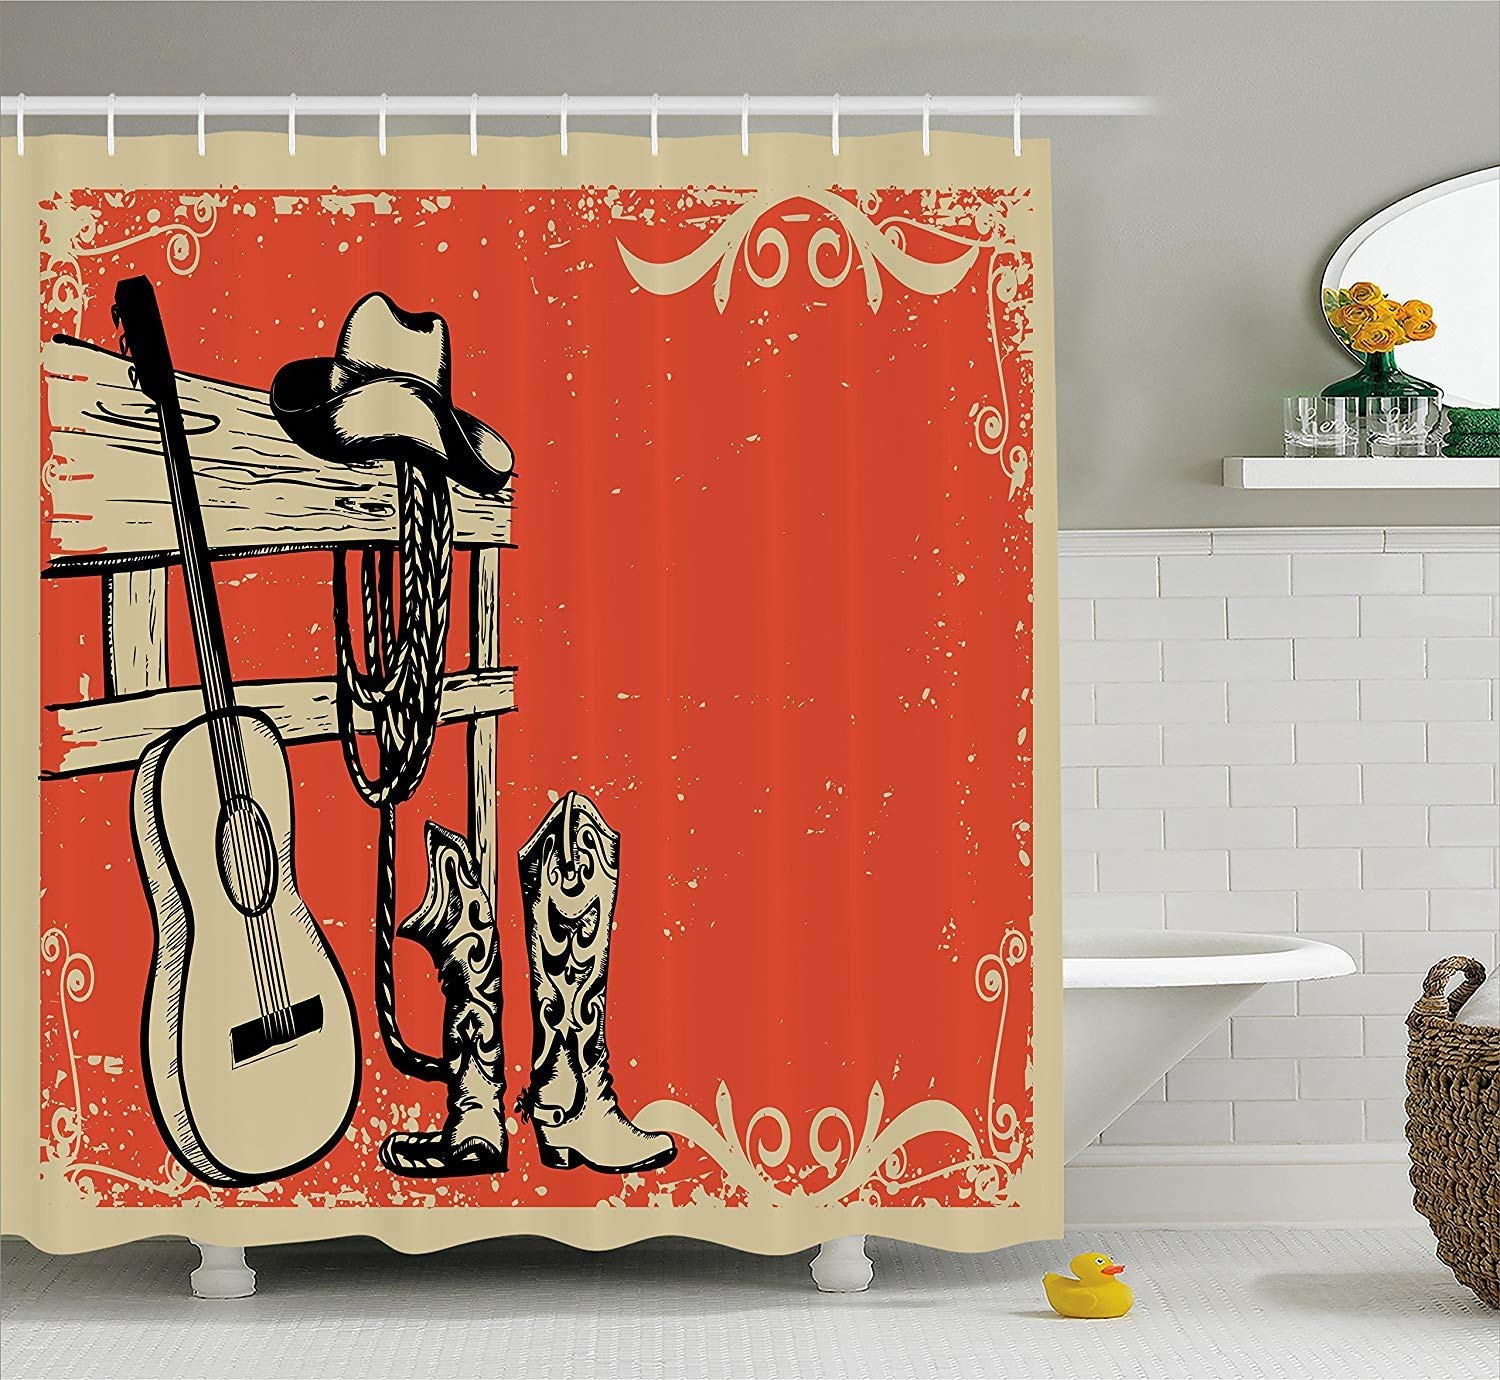 Western Shower Curtain, Image of Wild West Elements with Country Music Guitar and Cowboy Boots Retro Art, Fabric Bathroom Decor Set with Hooks, 84 Inches Extra Long, Beige Orange by Giow